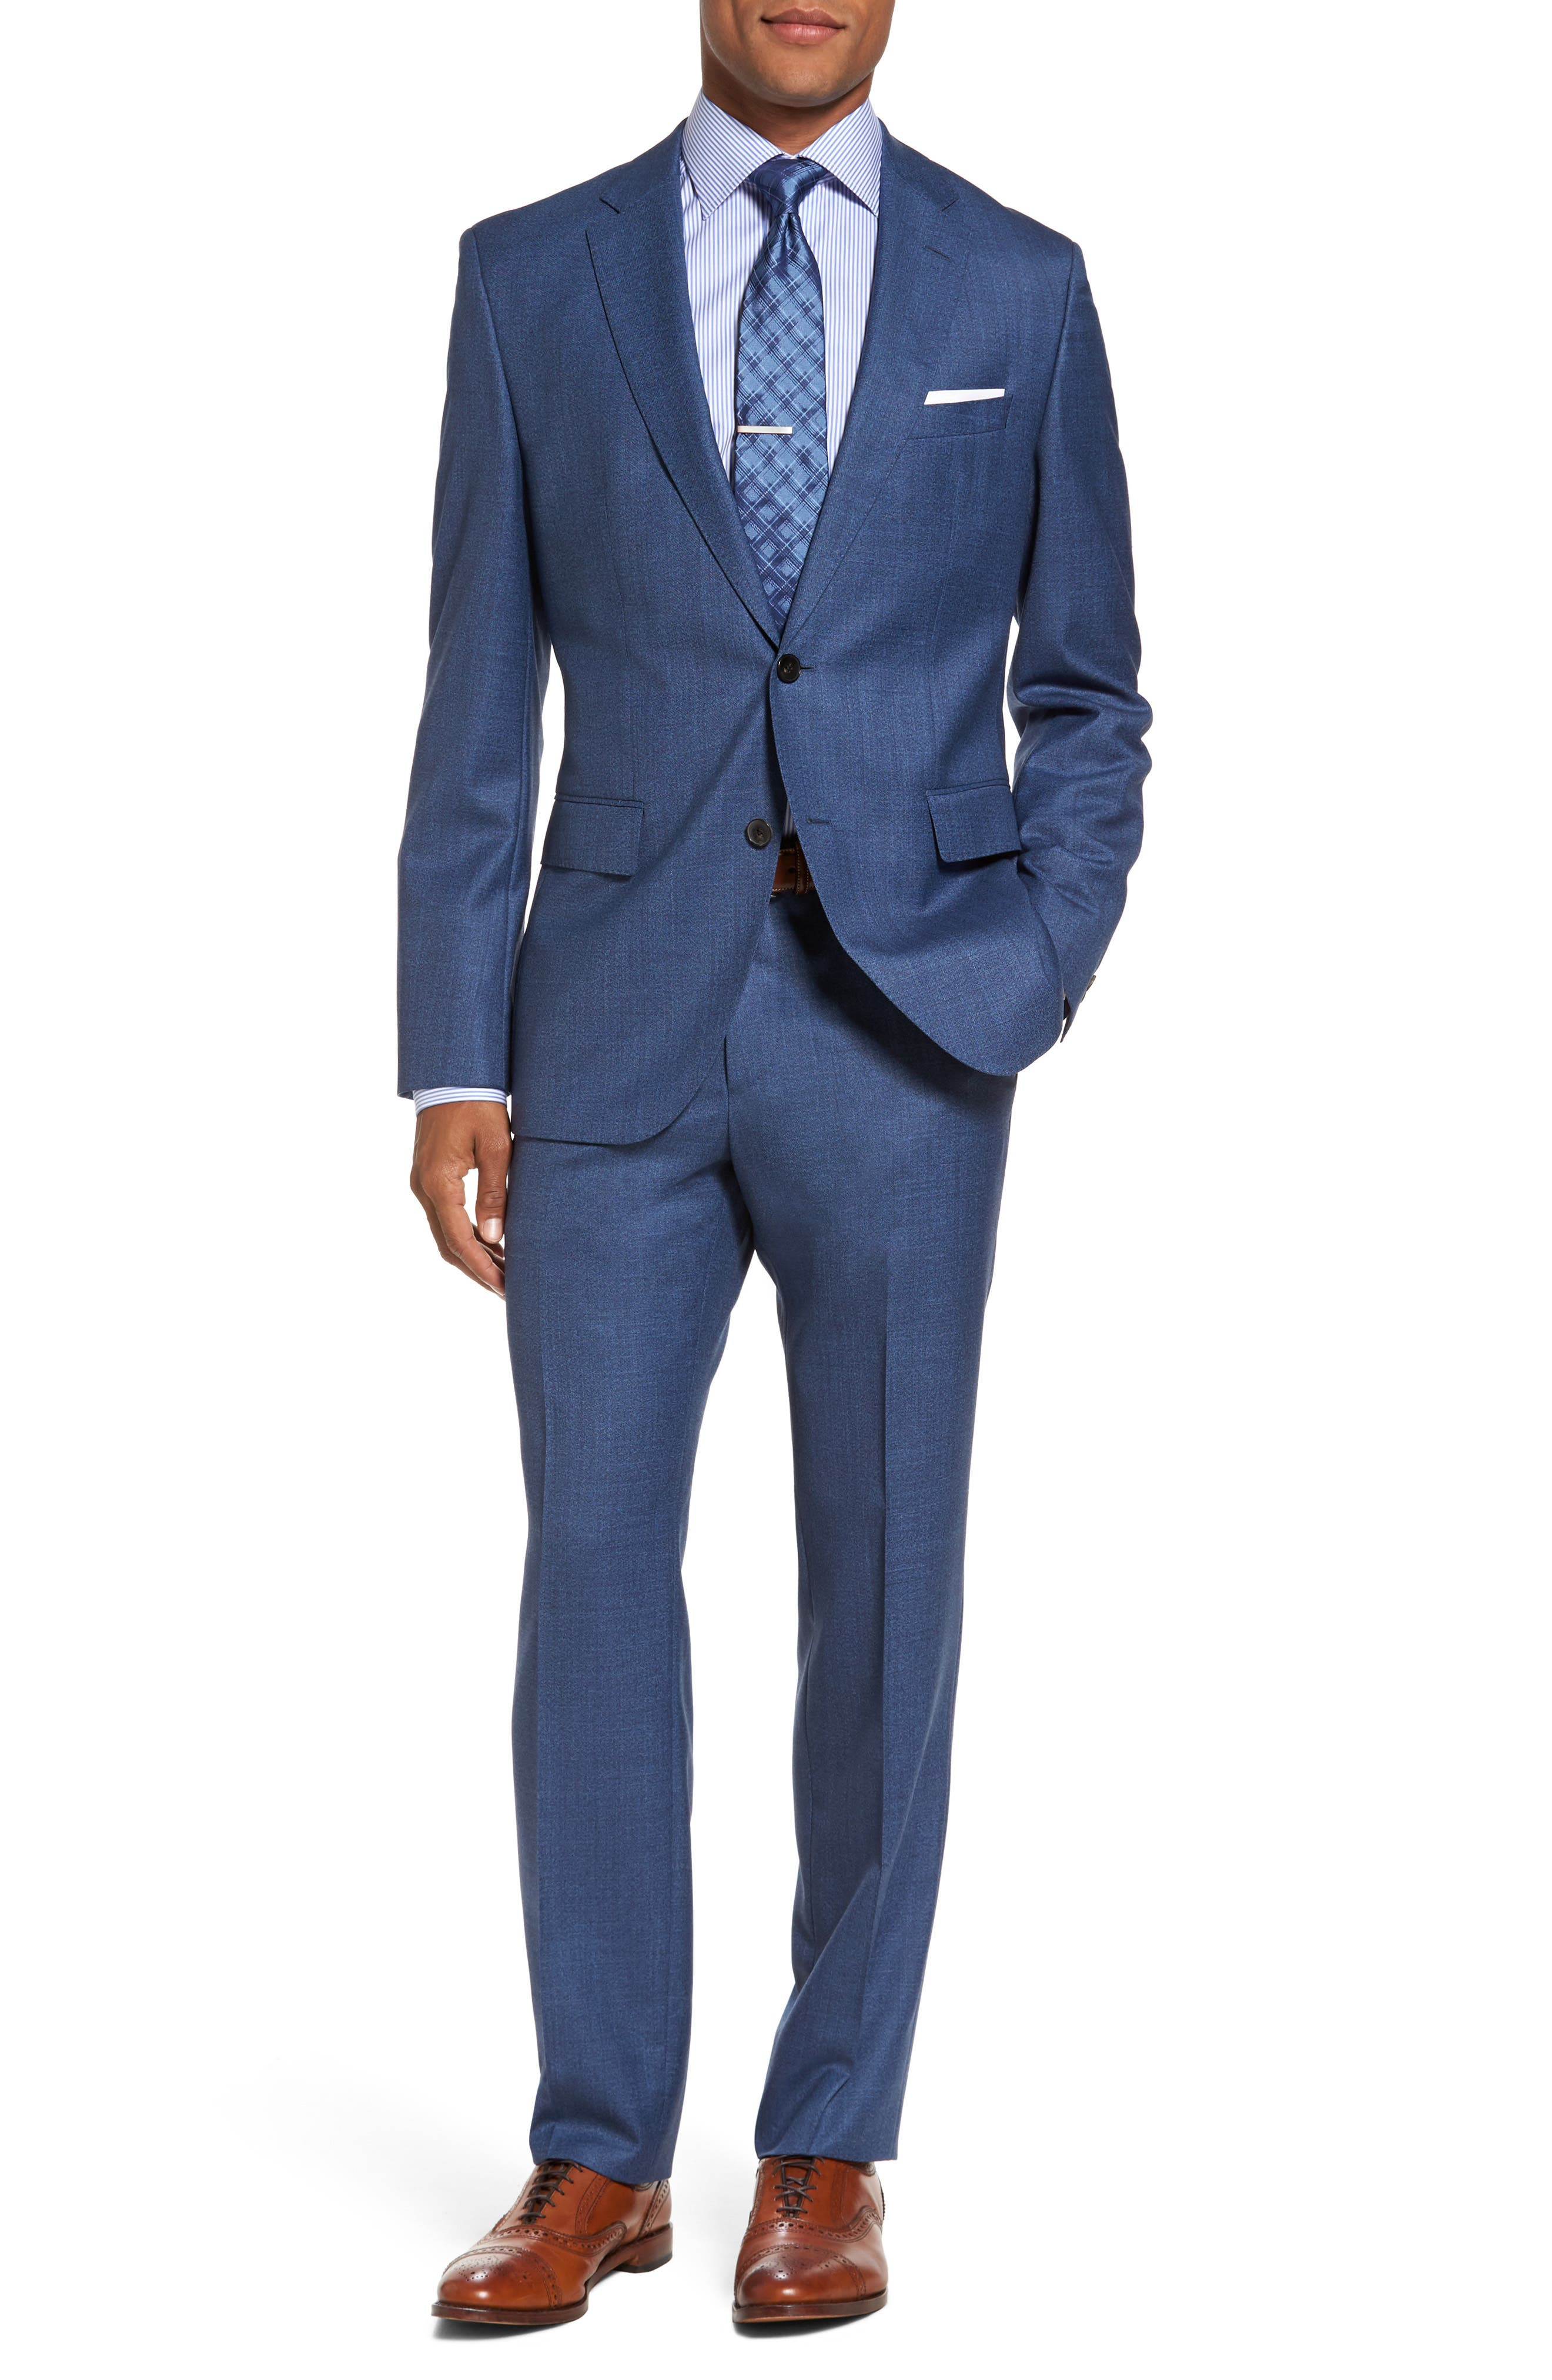 Johnstons/Lenon Classic Fit Solid Wool Suit,                             Main thumbnail 1, color,                             421